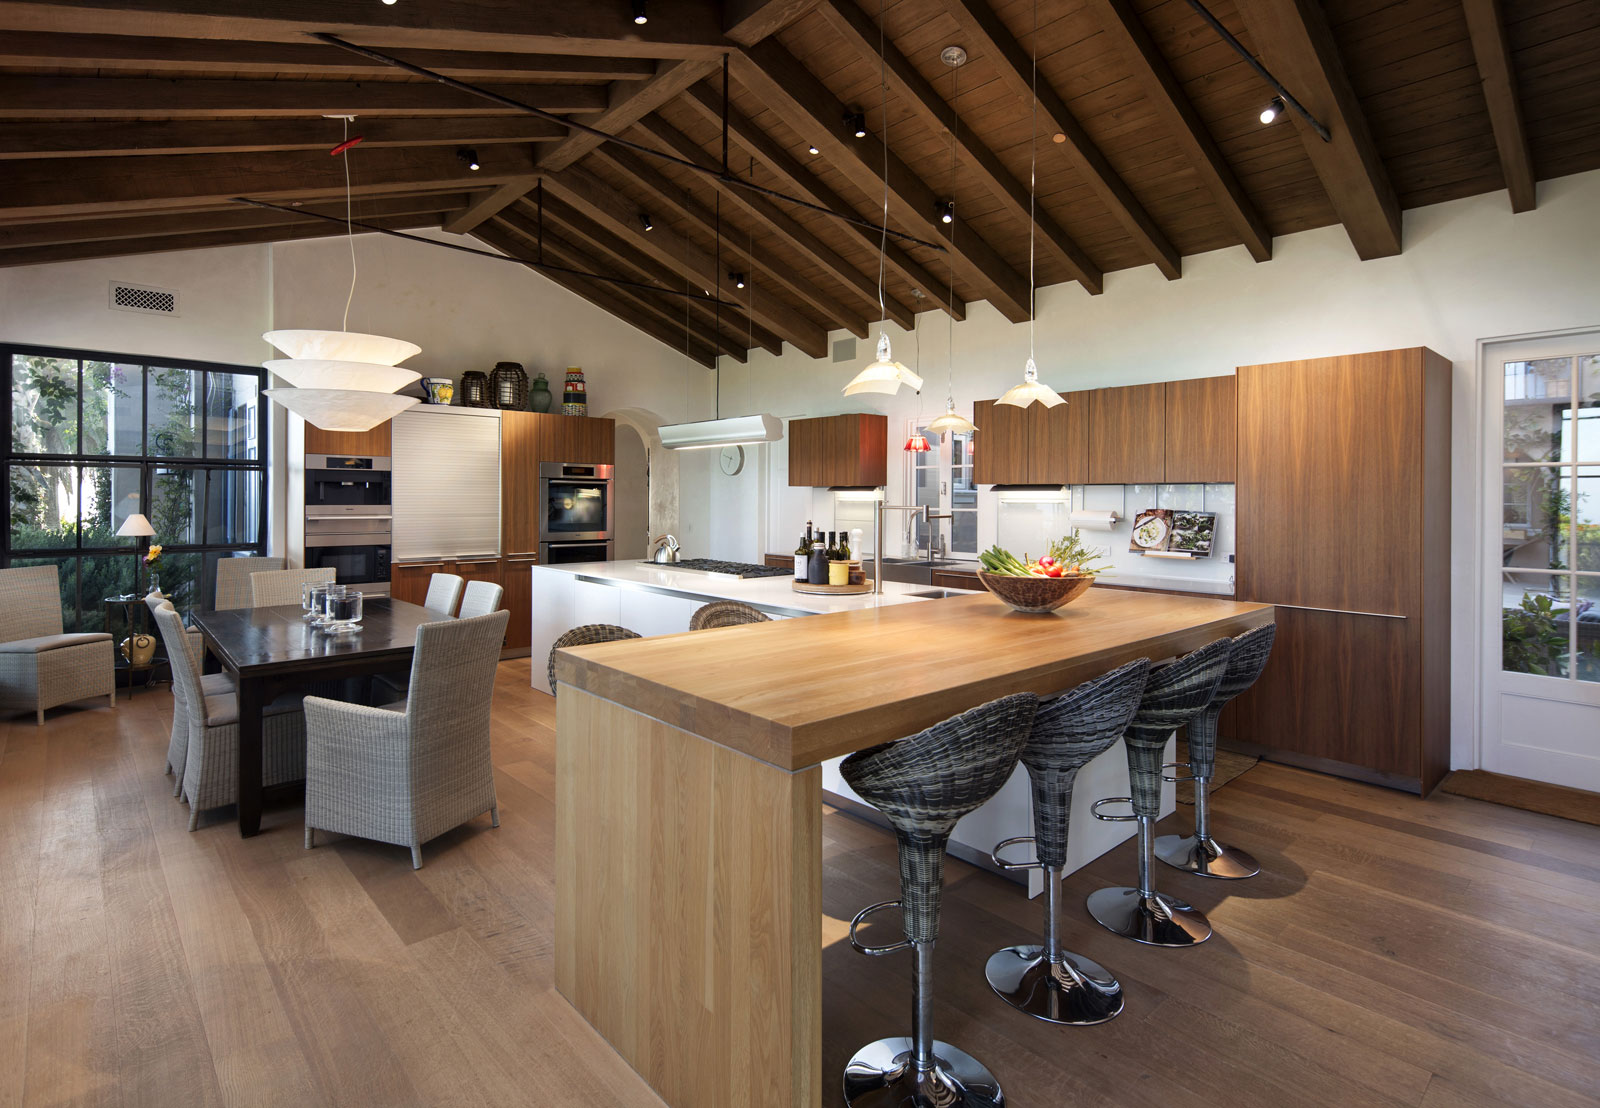 Modern kitchen with a kitchen island